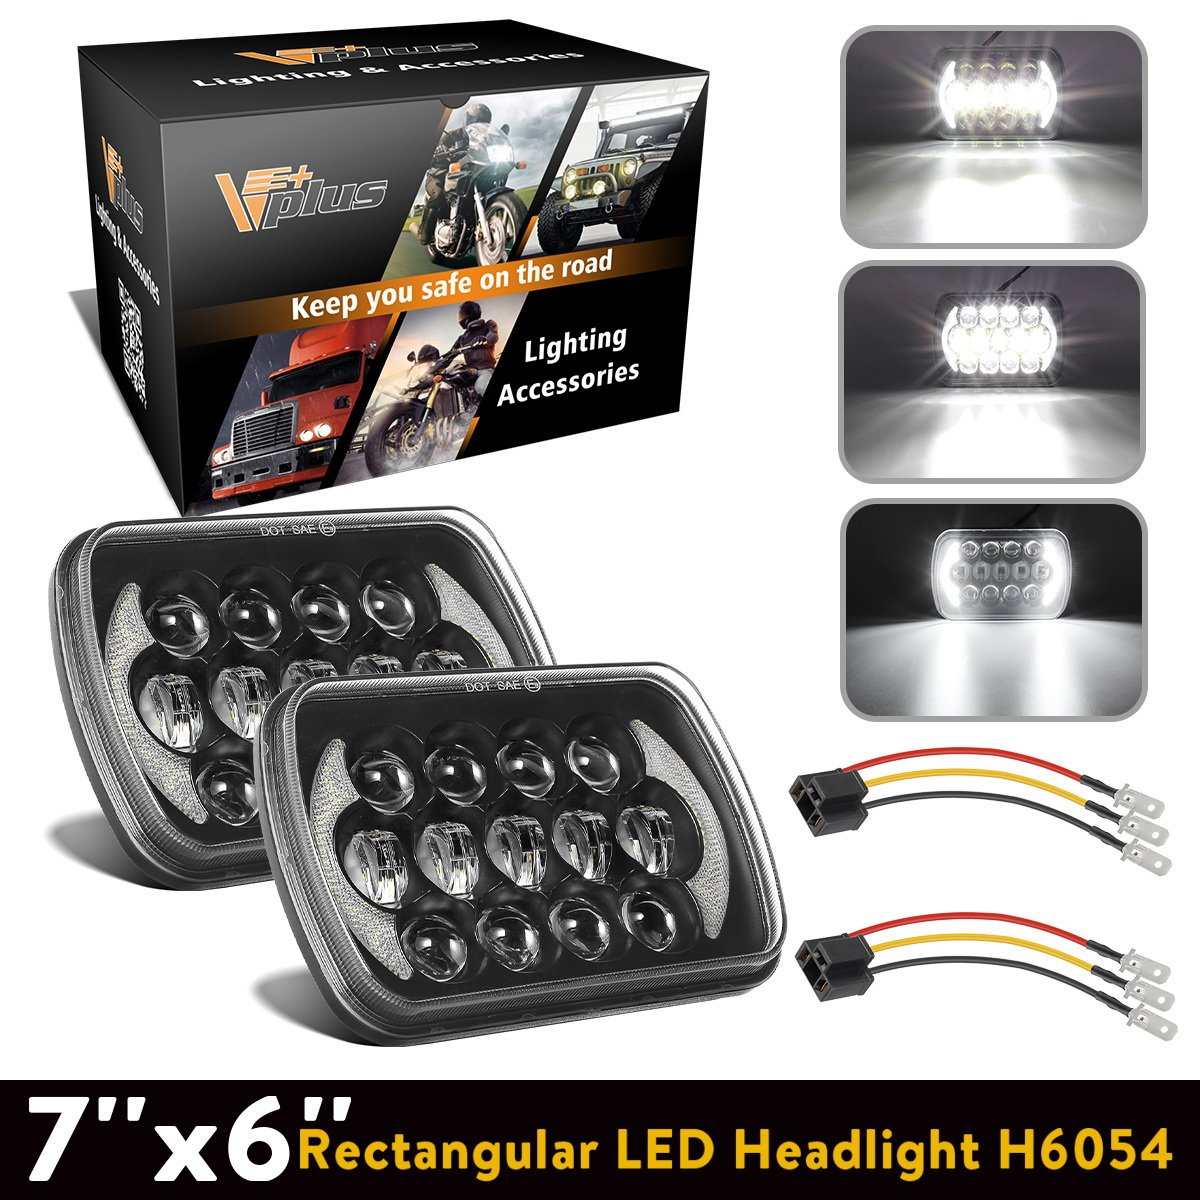 2Pcs 5x7 Led Headlights 7x6 Led Sealed Beam Headlights with Osram Chips Angel Eyes DRL High Low Beam C4 Corvette H6054 6054 Led Headlight for Jeep Wrangler YJ Cherokee XJ H5054 H6054LL 6052 6053